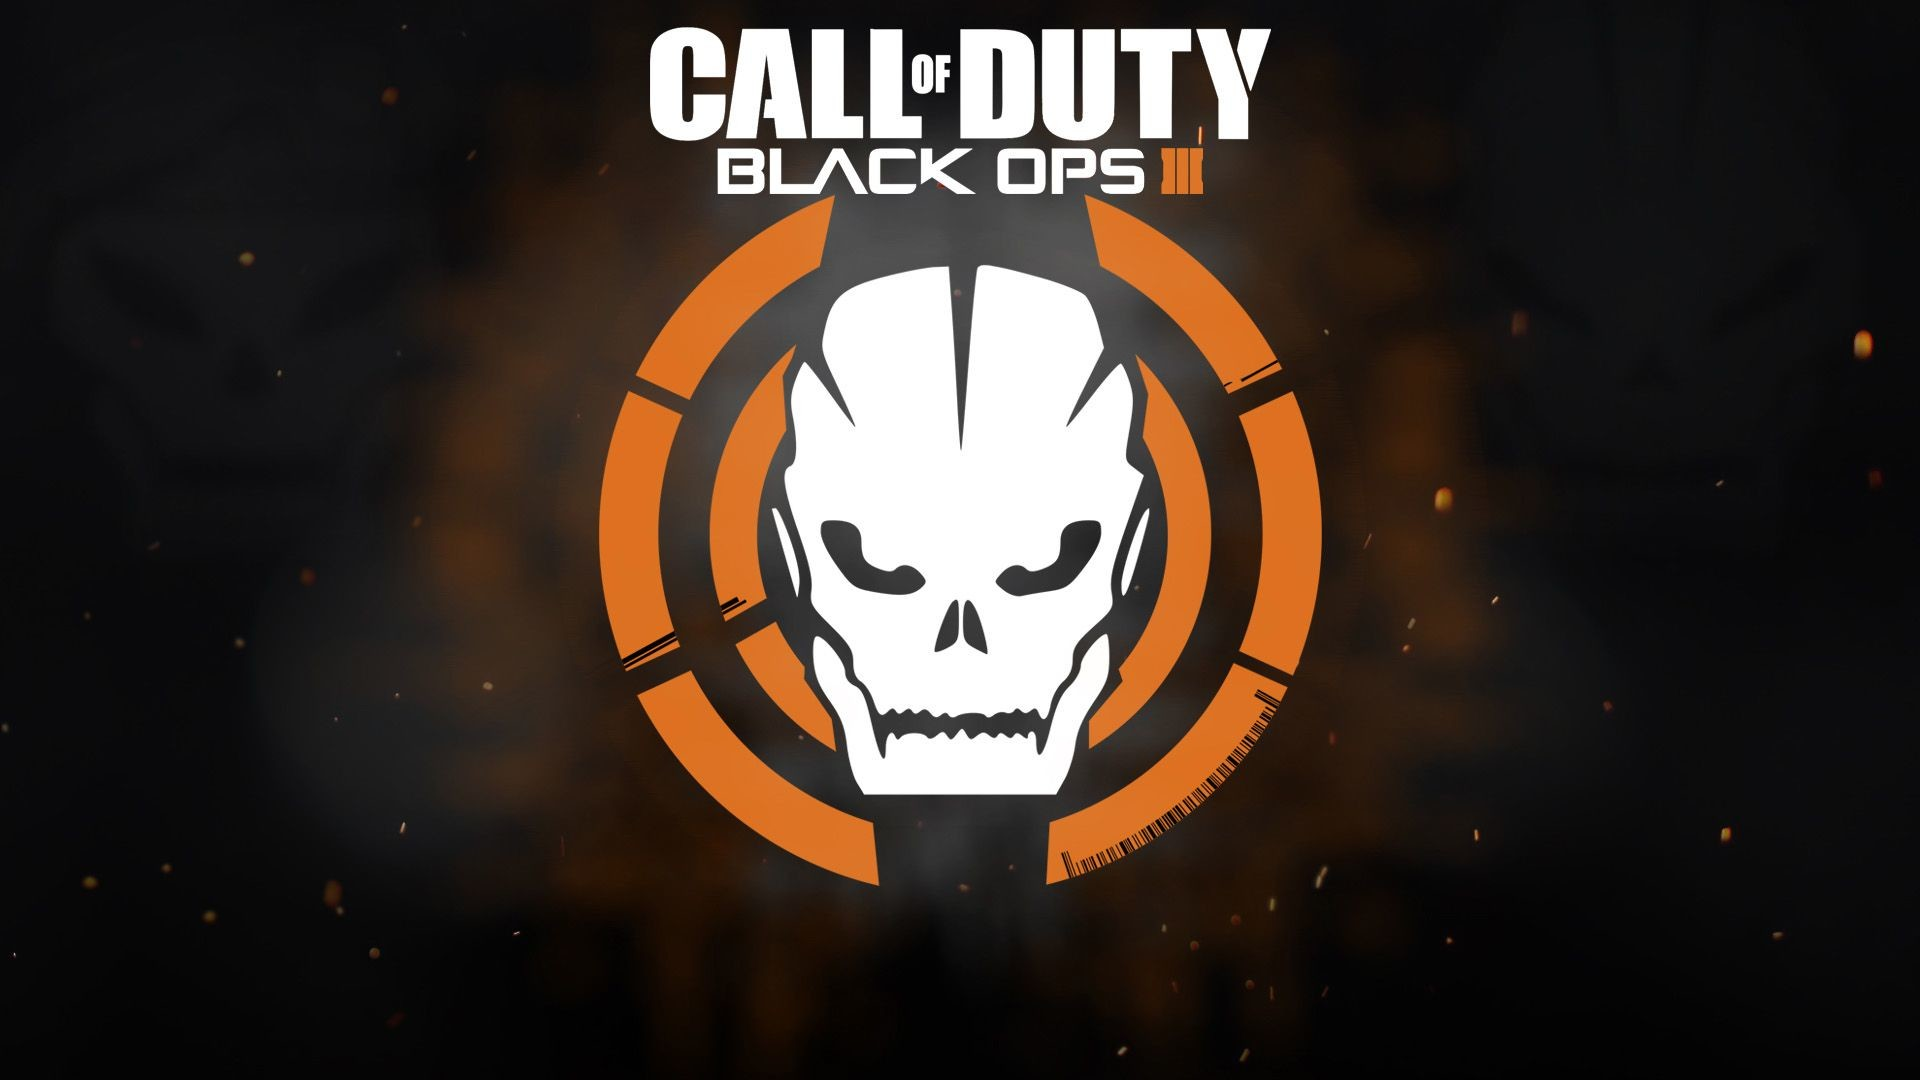 Call of Duty Black Ops 3 wallpapers HD free Download